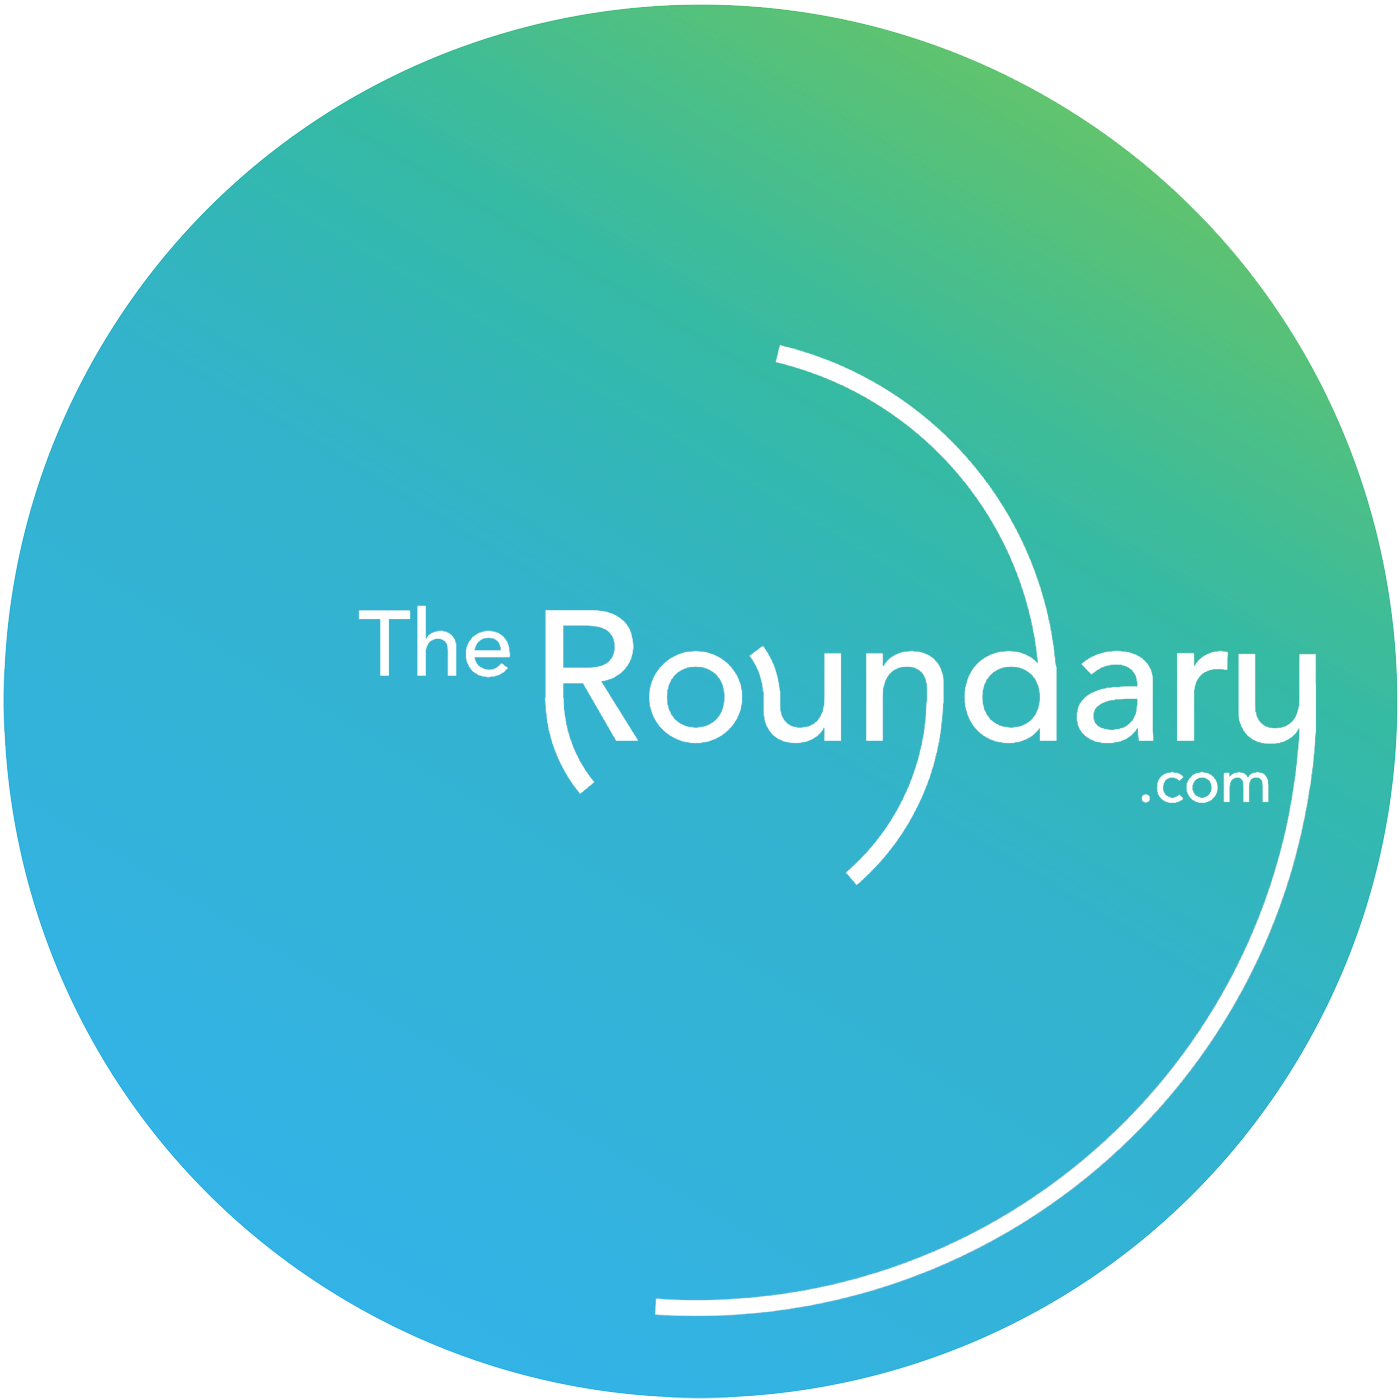 Welcome to the ROundary